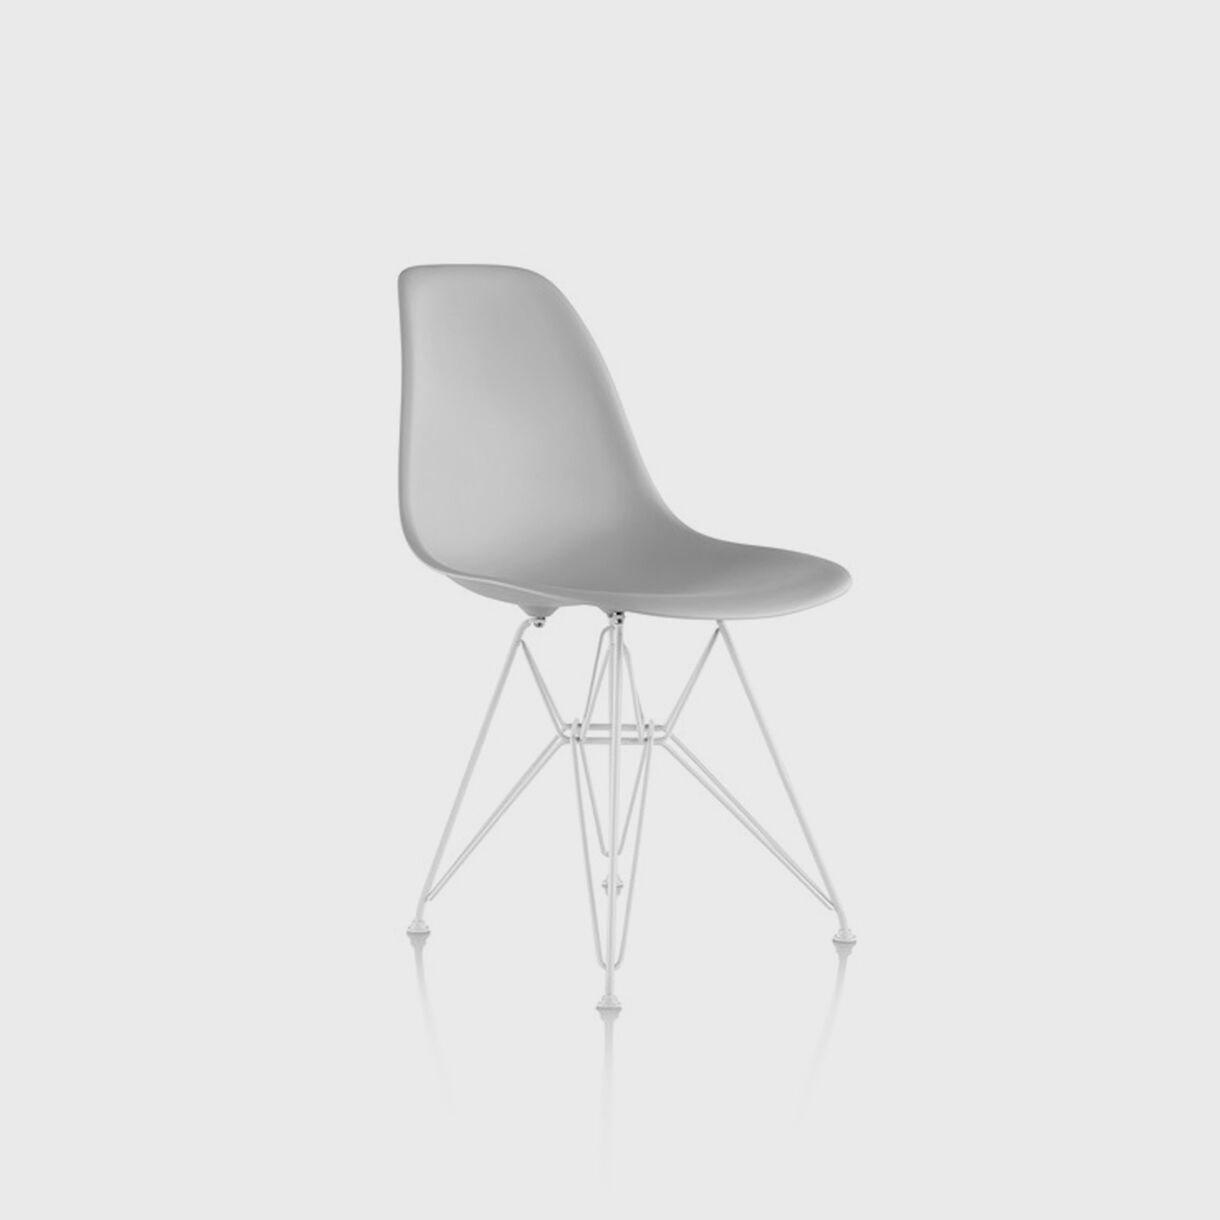 Eames Moulded Plastic Side Chair